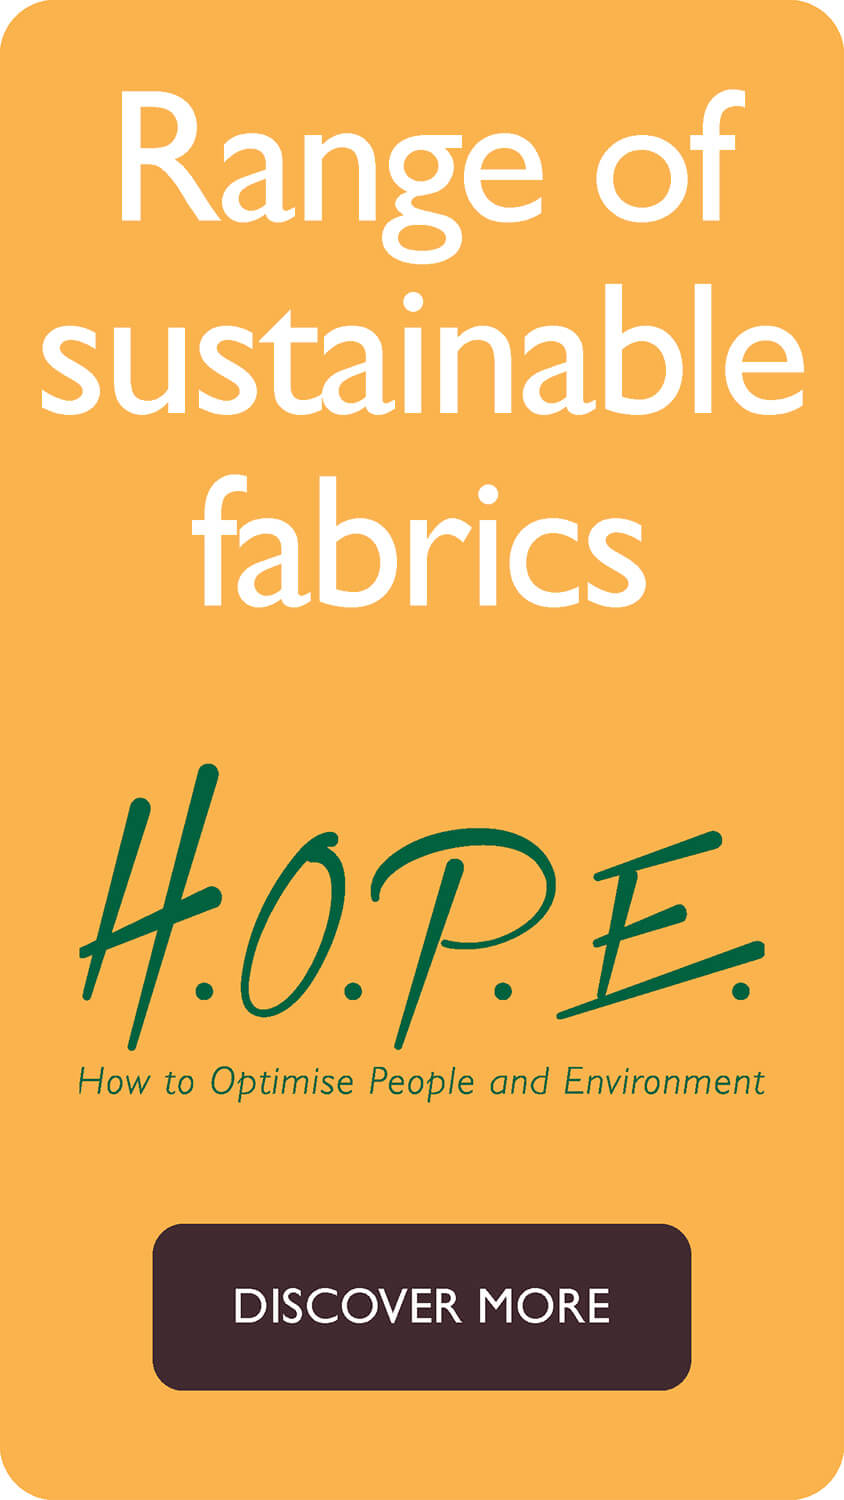 Range of sustainable fabrics